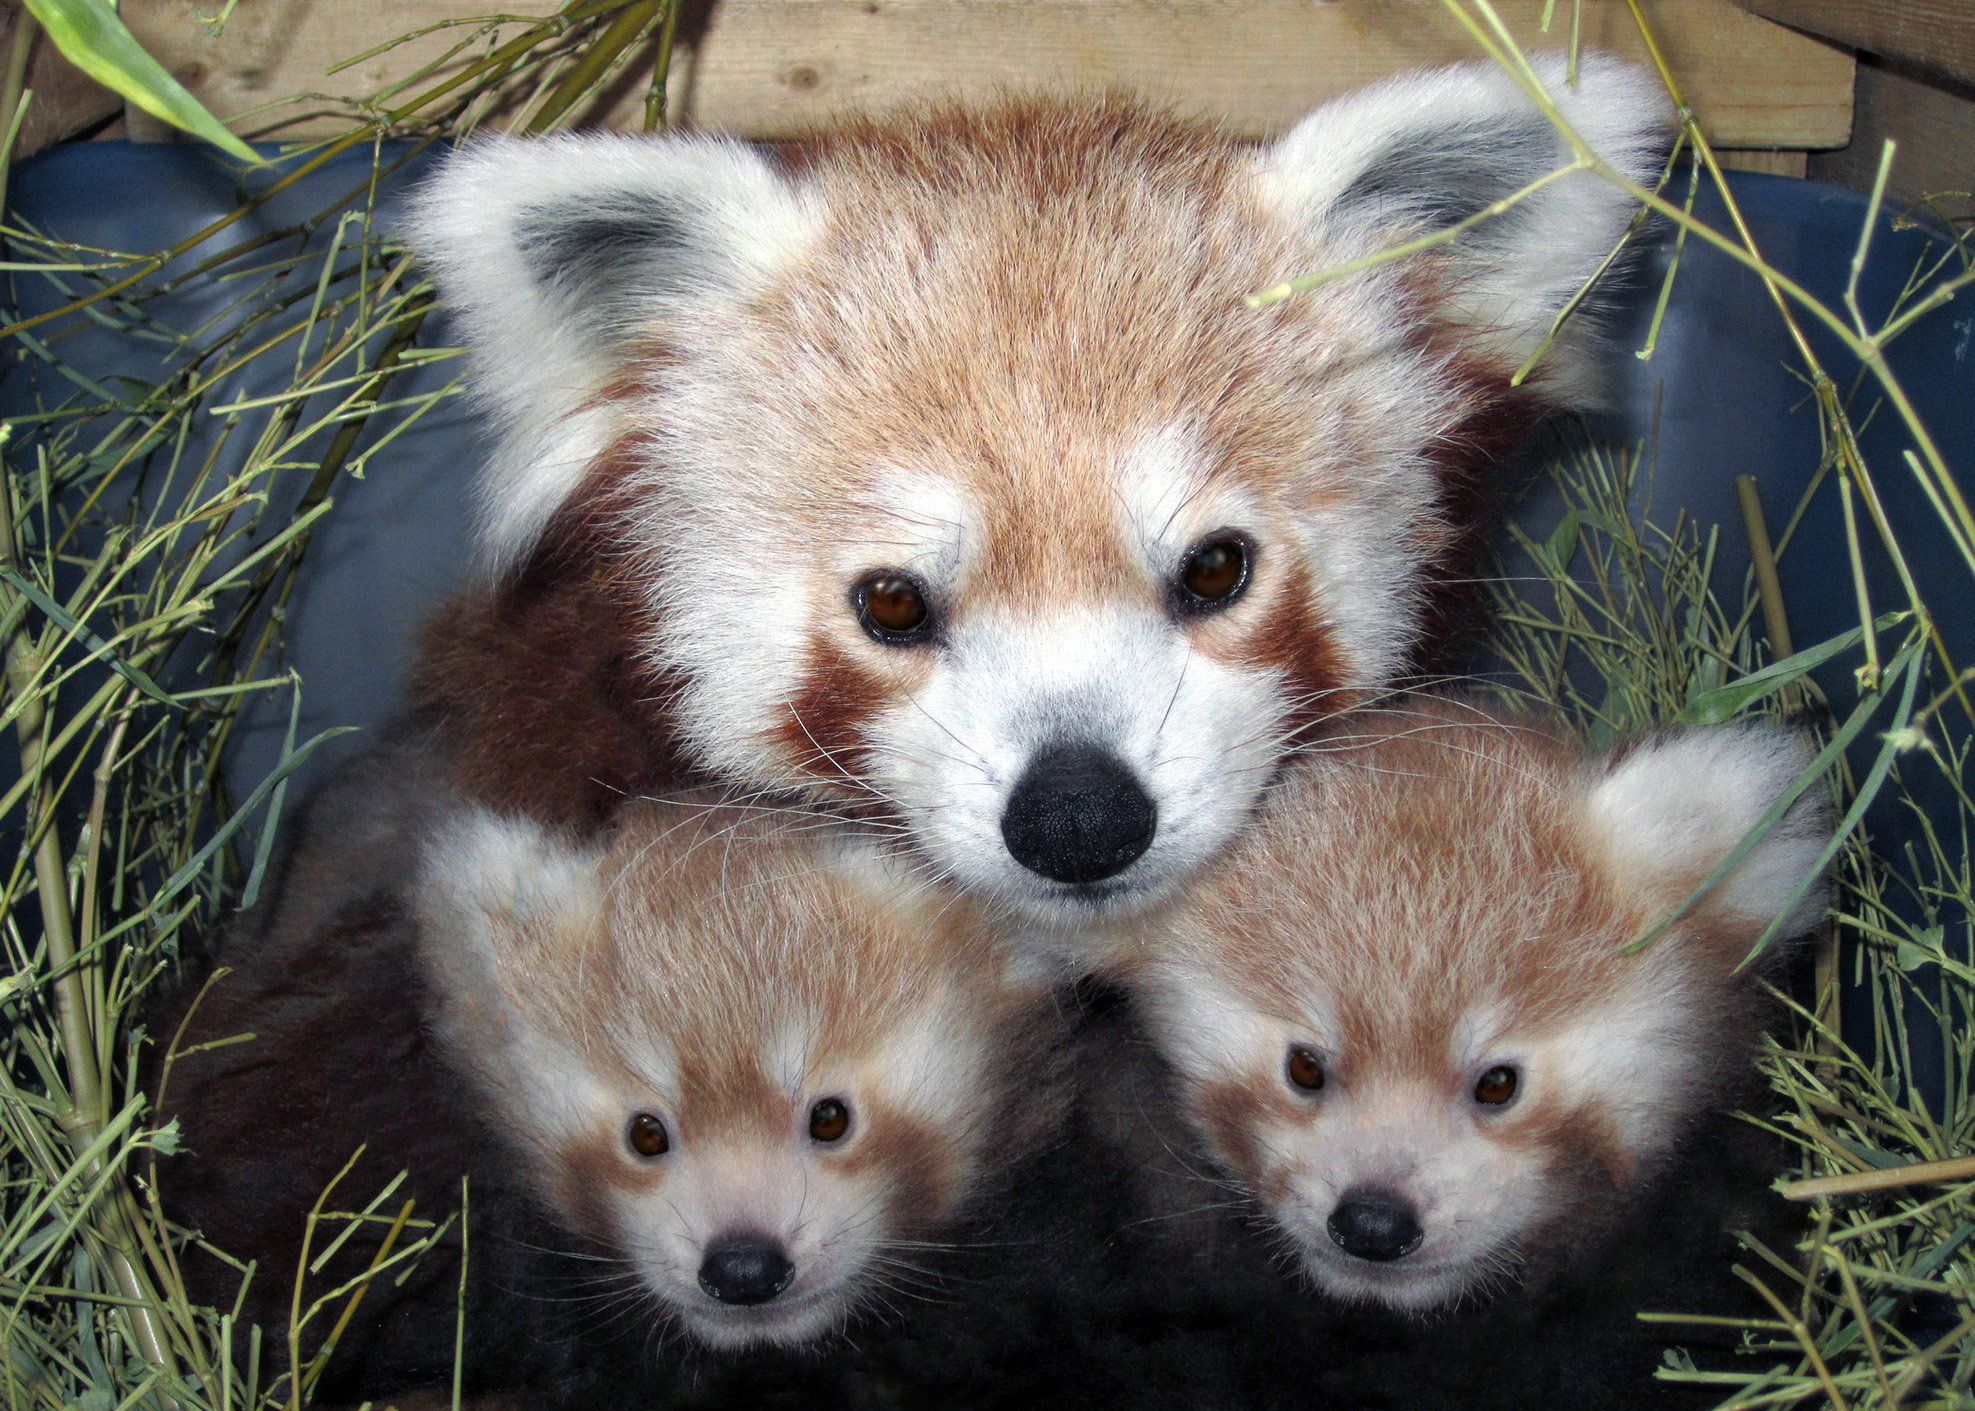 Rusty the red panda, on loan at the National Zoo in Washington, DC, somehow escaped from that facility. (Credit: CNN)